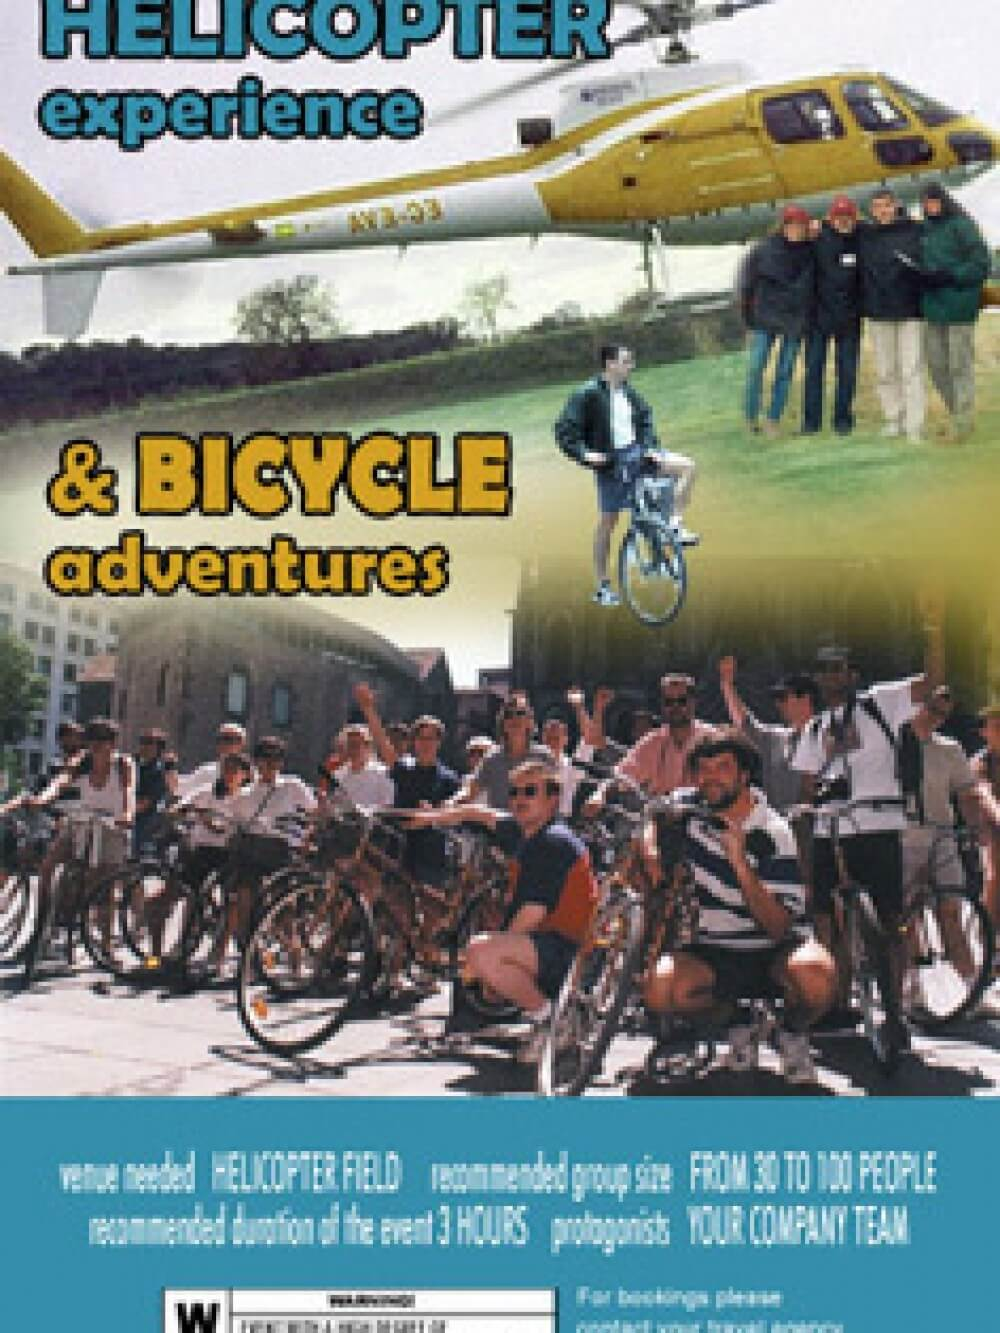 helicopter_experience_and_bicycle_adventures_vertical_web